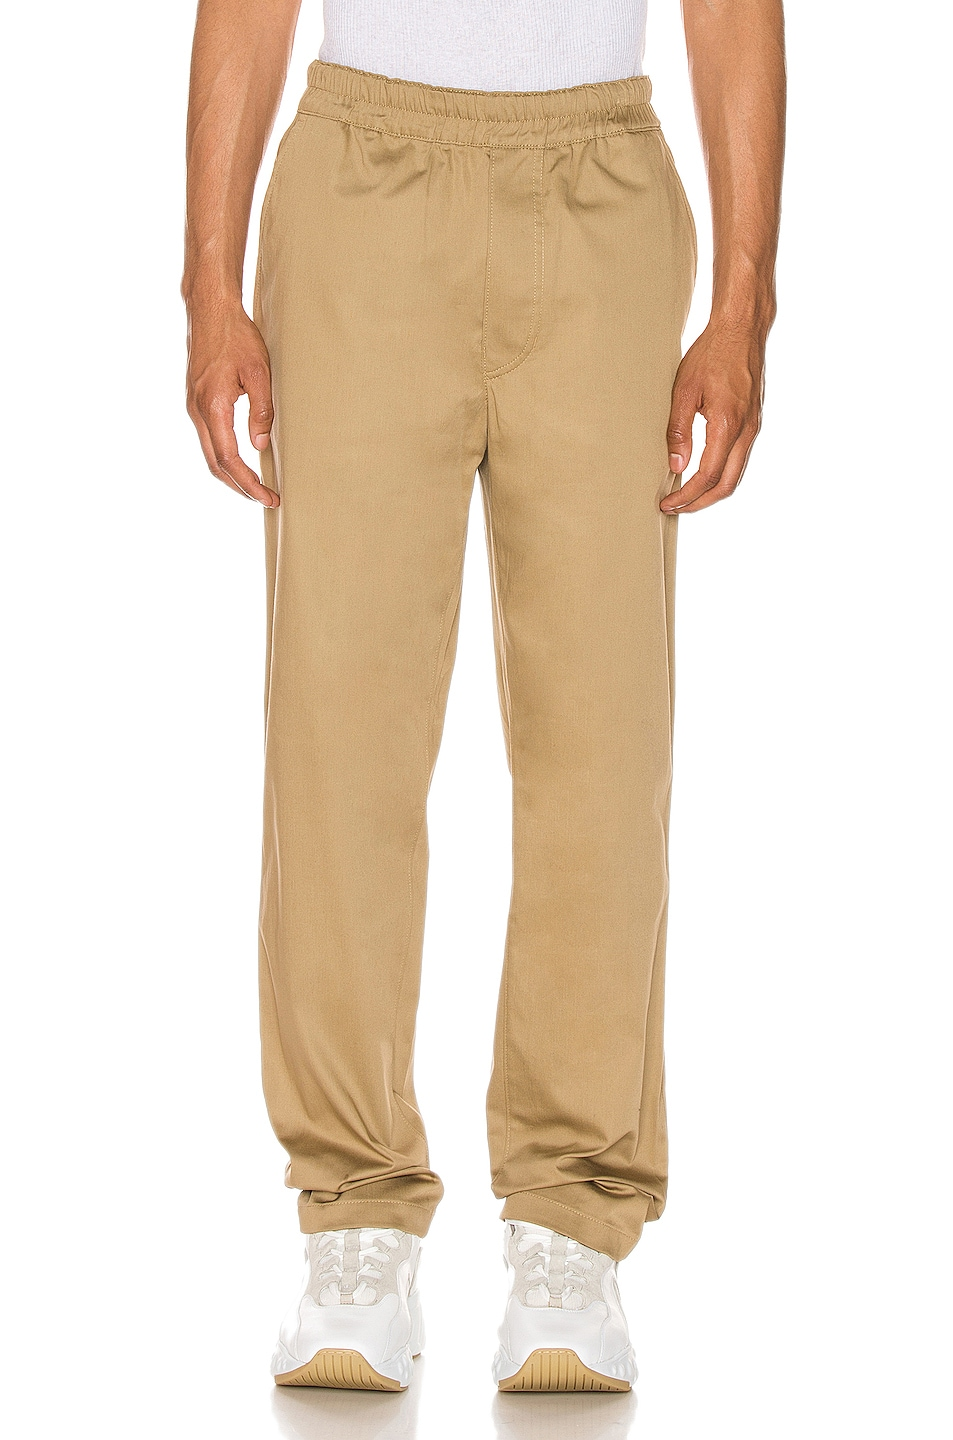 Image 1 of Acne Studios Paco Satin Trousers in Sand Beige